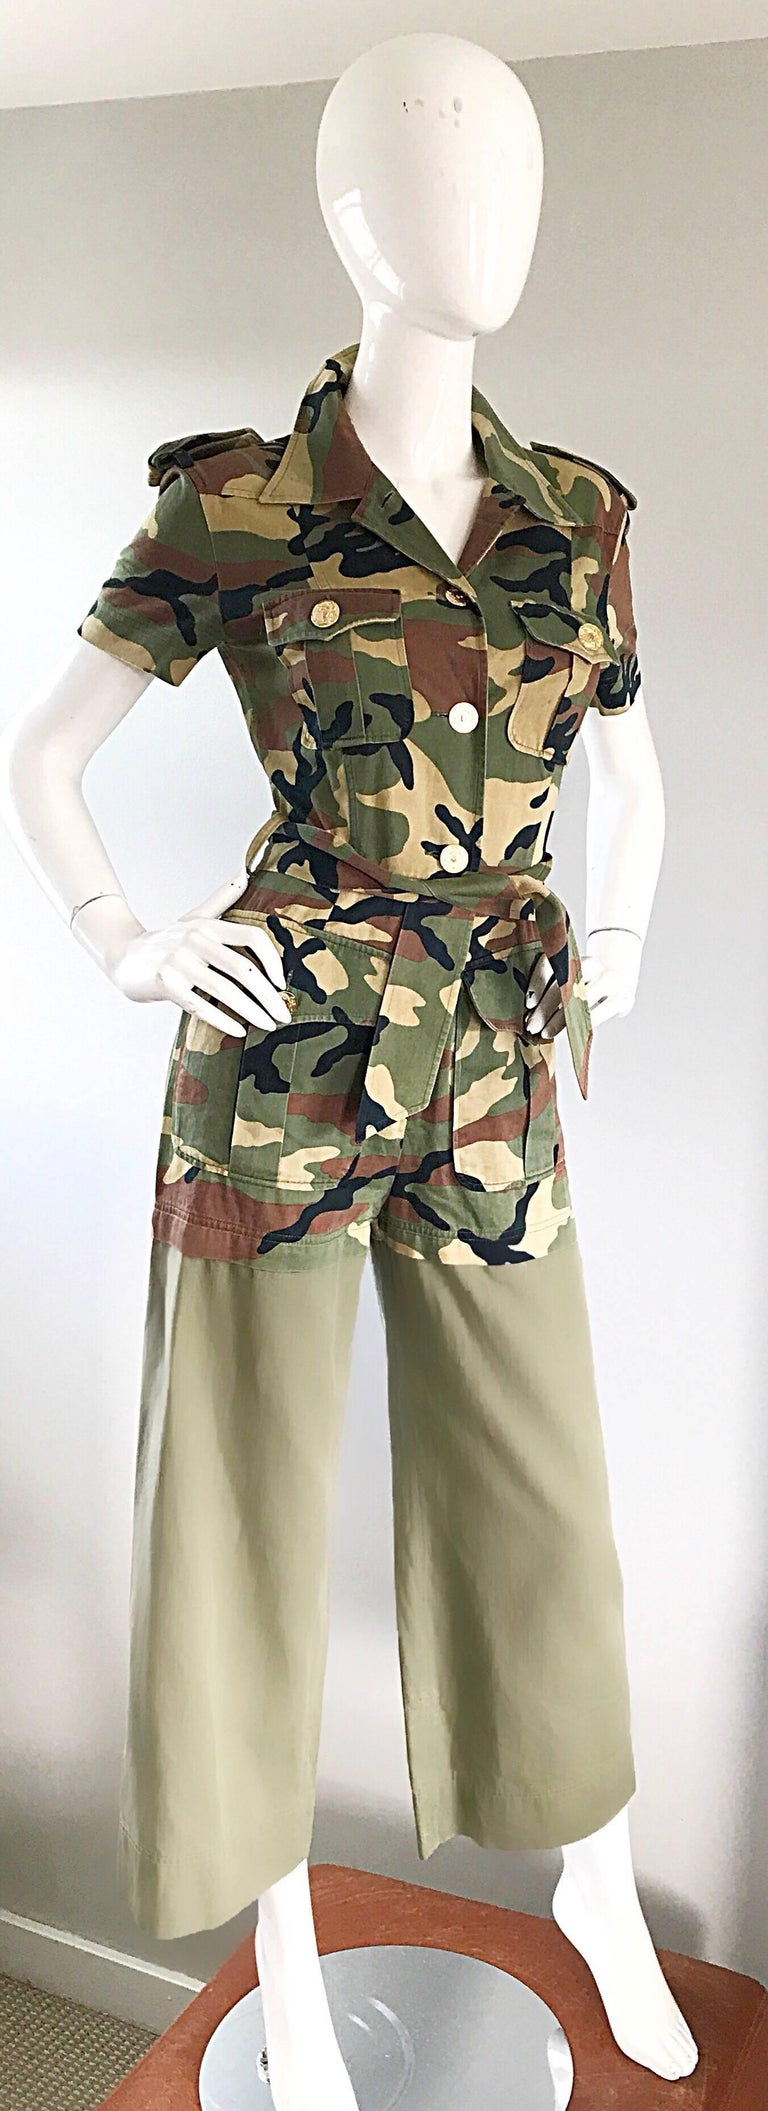 Women's Vintage Moschino Camouflage 1990s Belted 90s Rare Safari Cargo Jumpsuit Romper For Sale